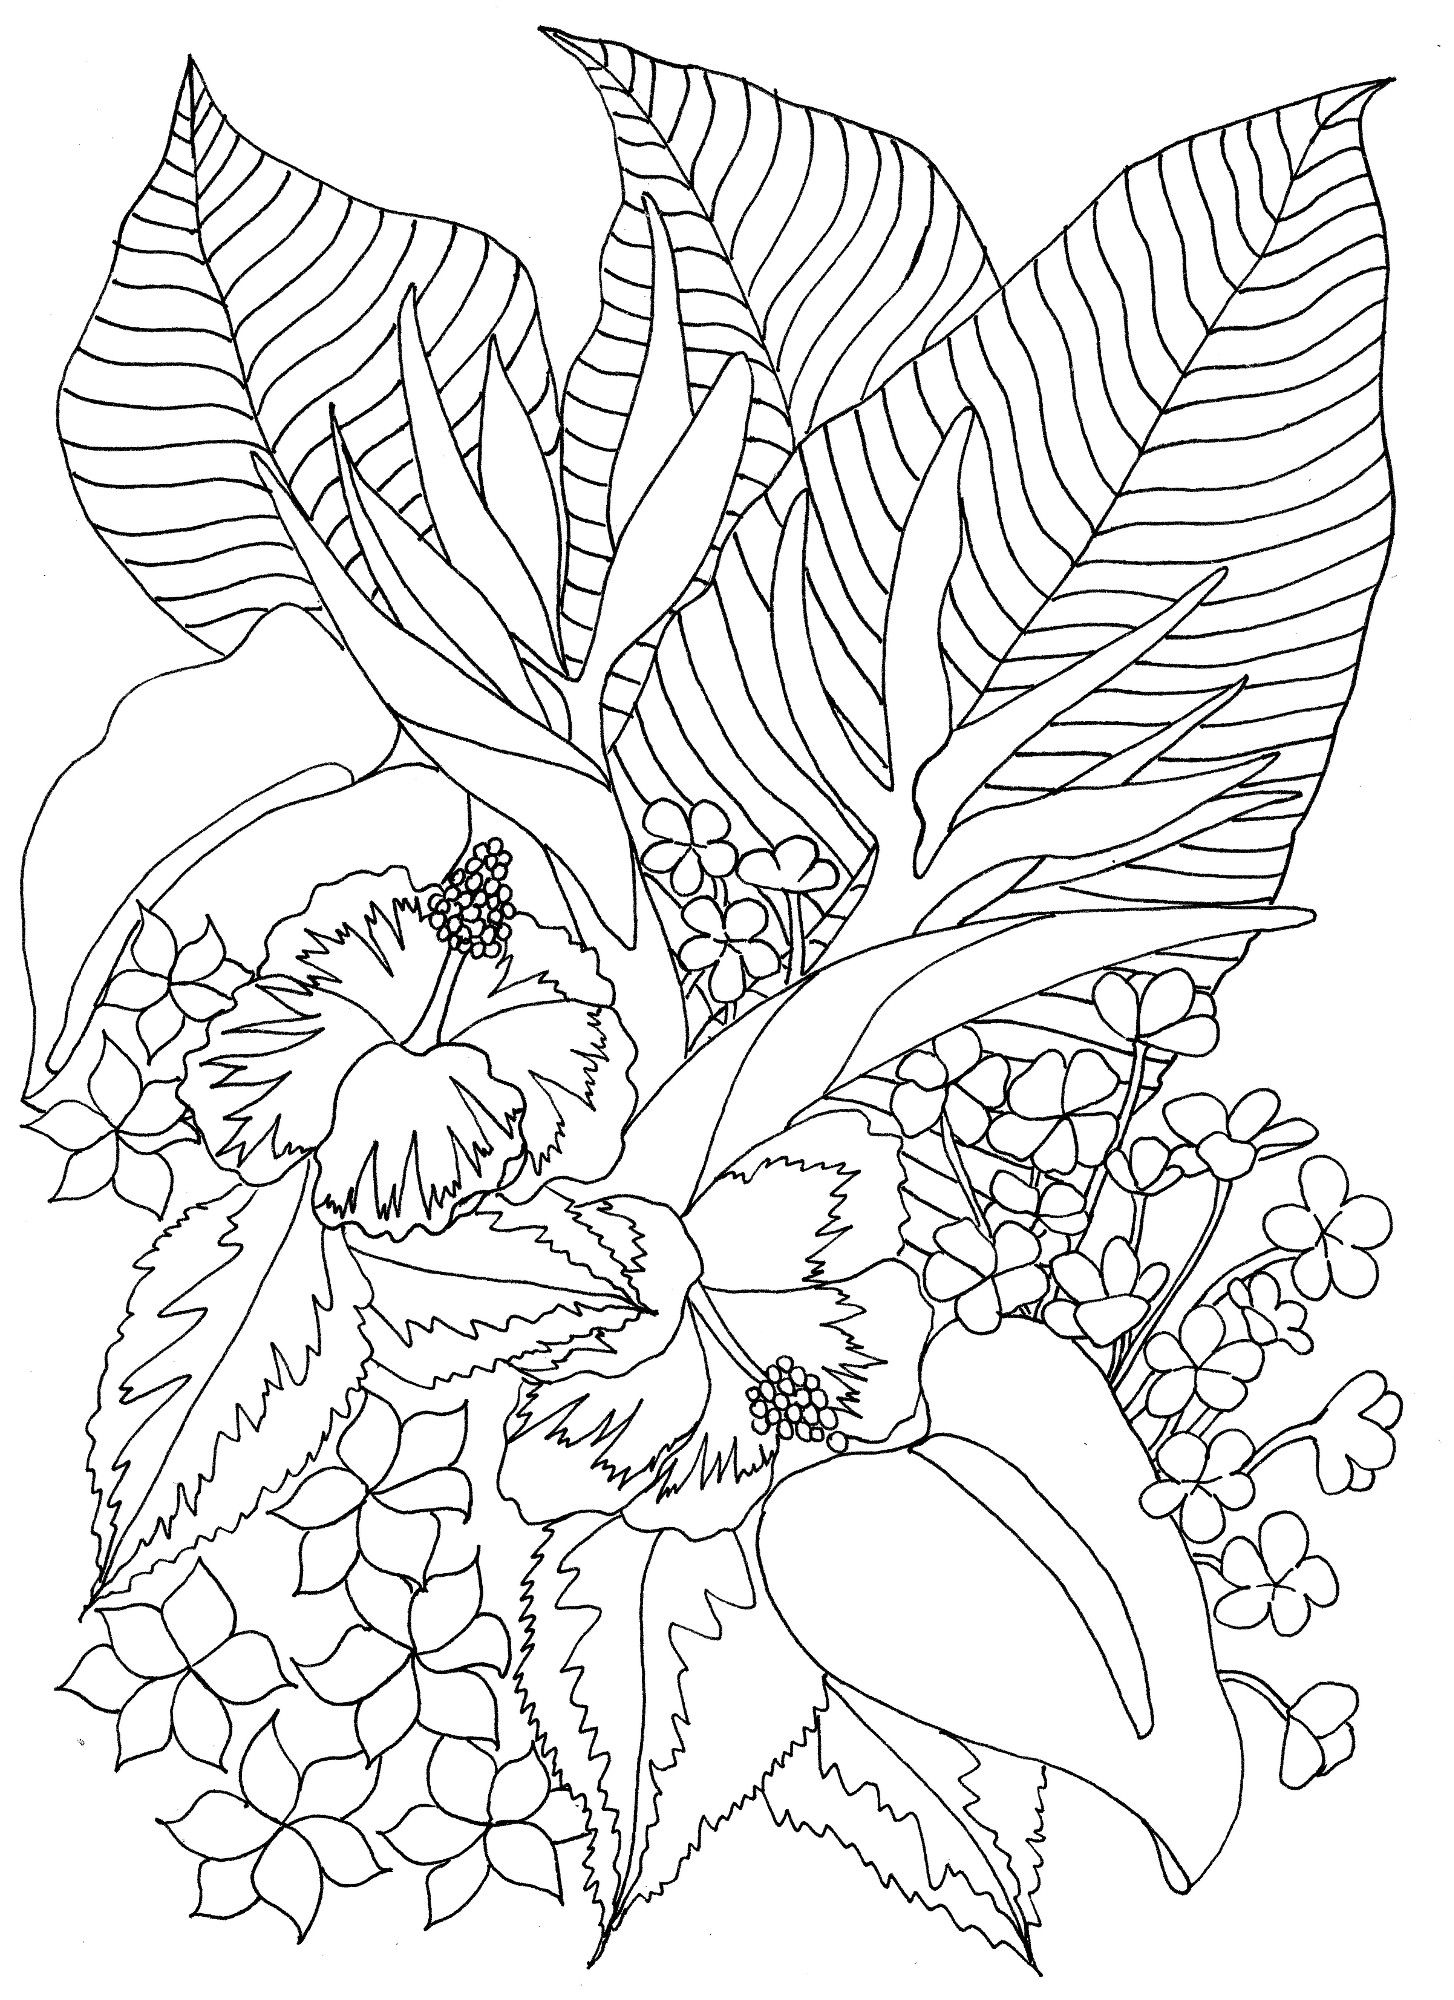 original and fun coloring pages | Flower coloring pages, Cool ...